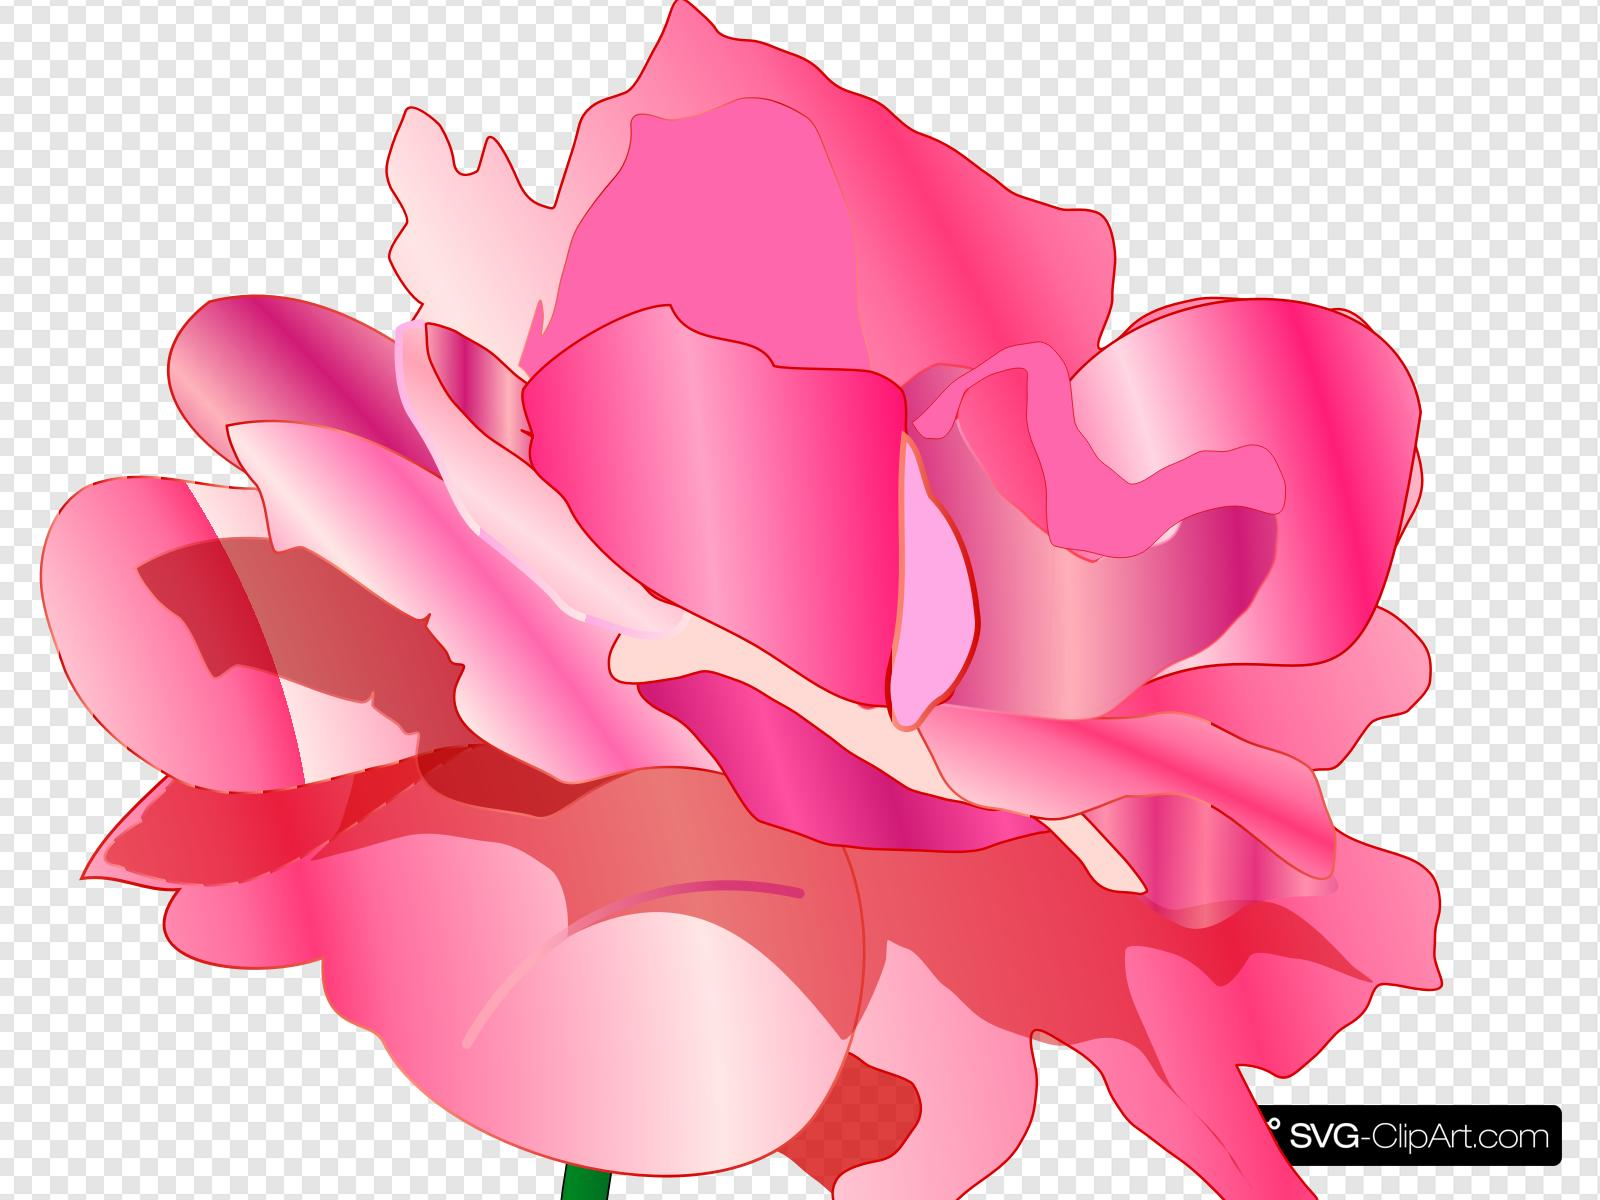 Pink flowers with shadows clipart jpg free stock Pink Rose No Shadow Clip art, Icon and SVG - SVG Clipart jpg free stock